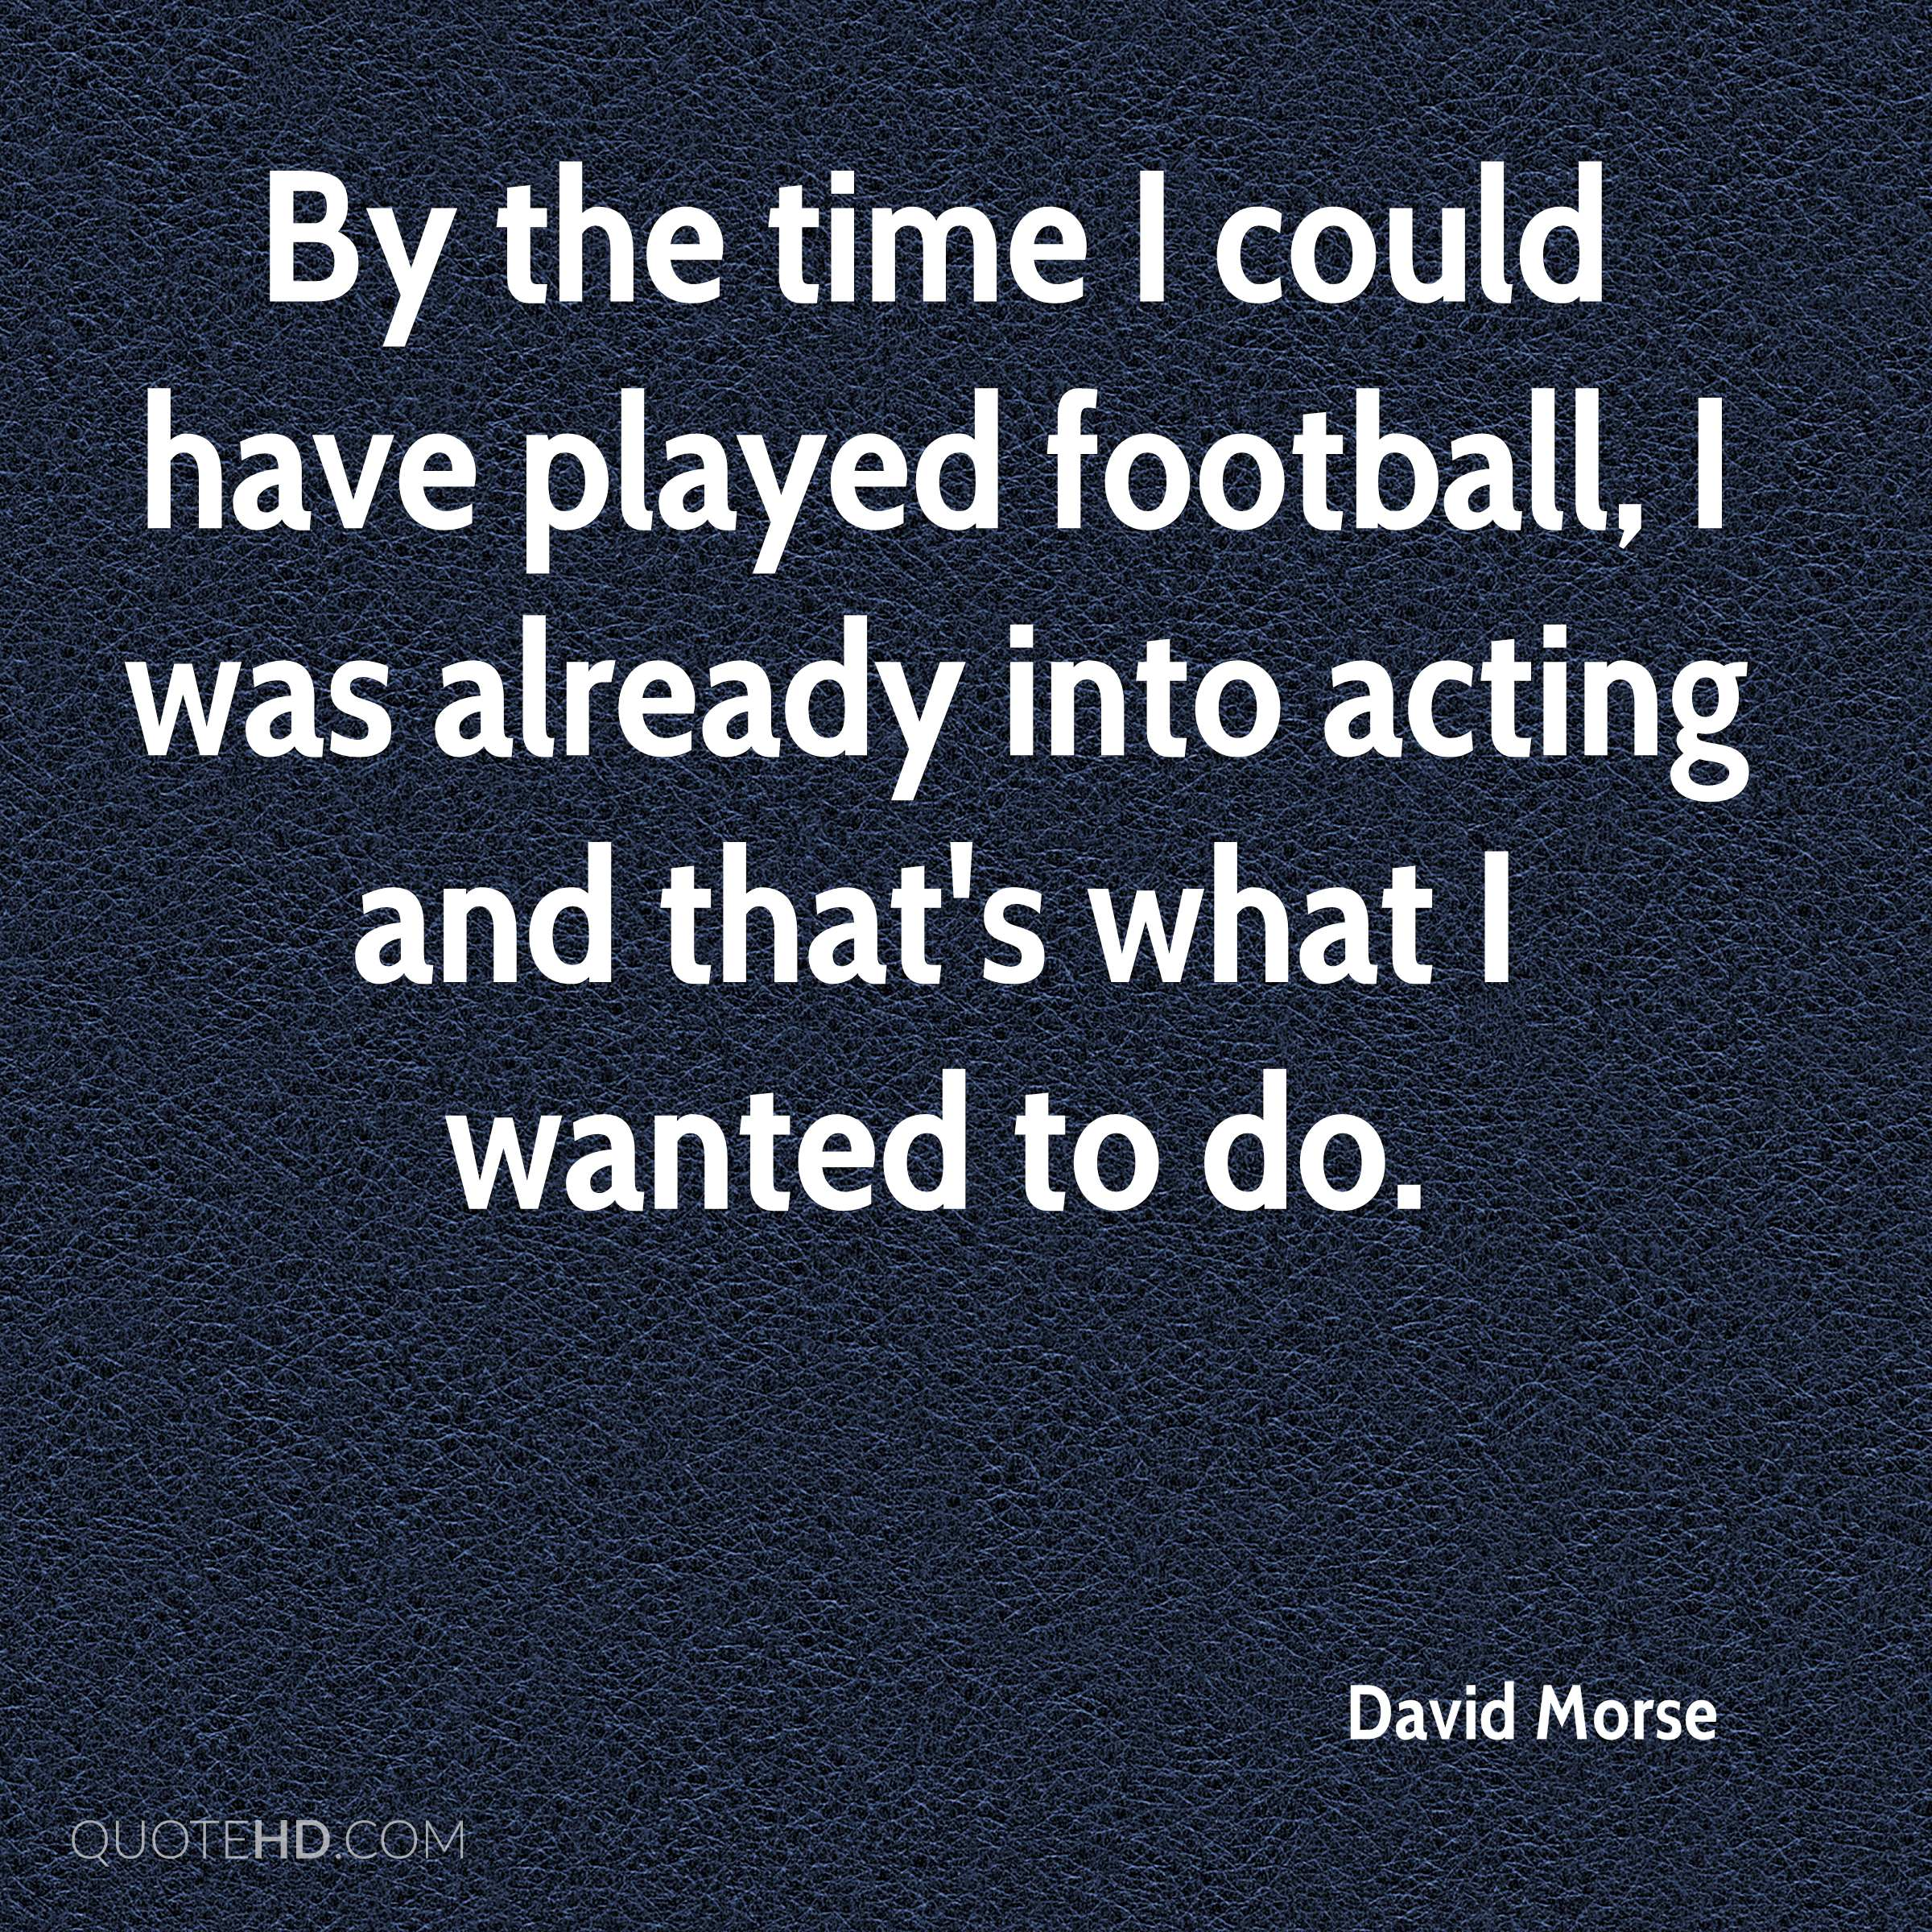 By the time I could have played football, I was already into acting and that's what I wanted to do.